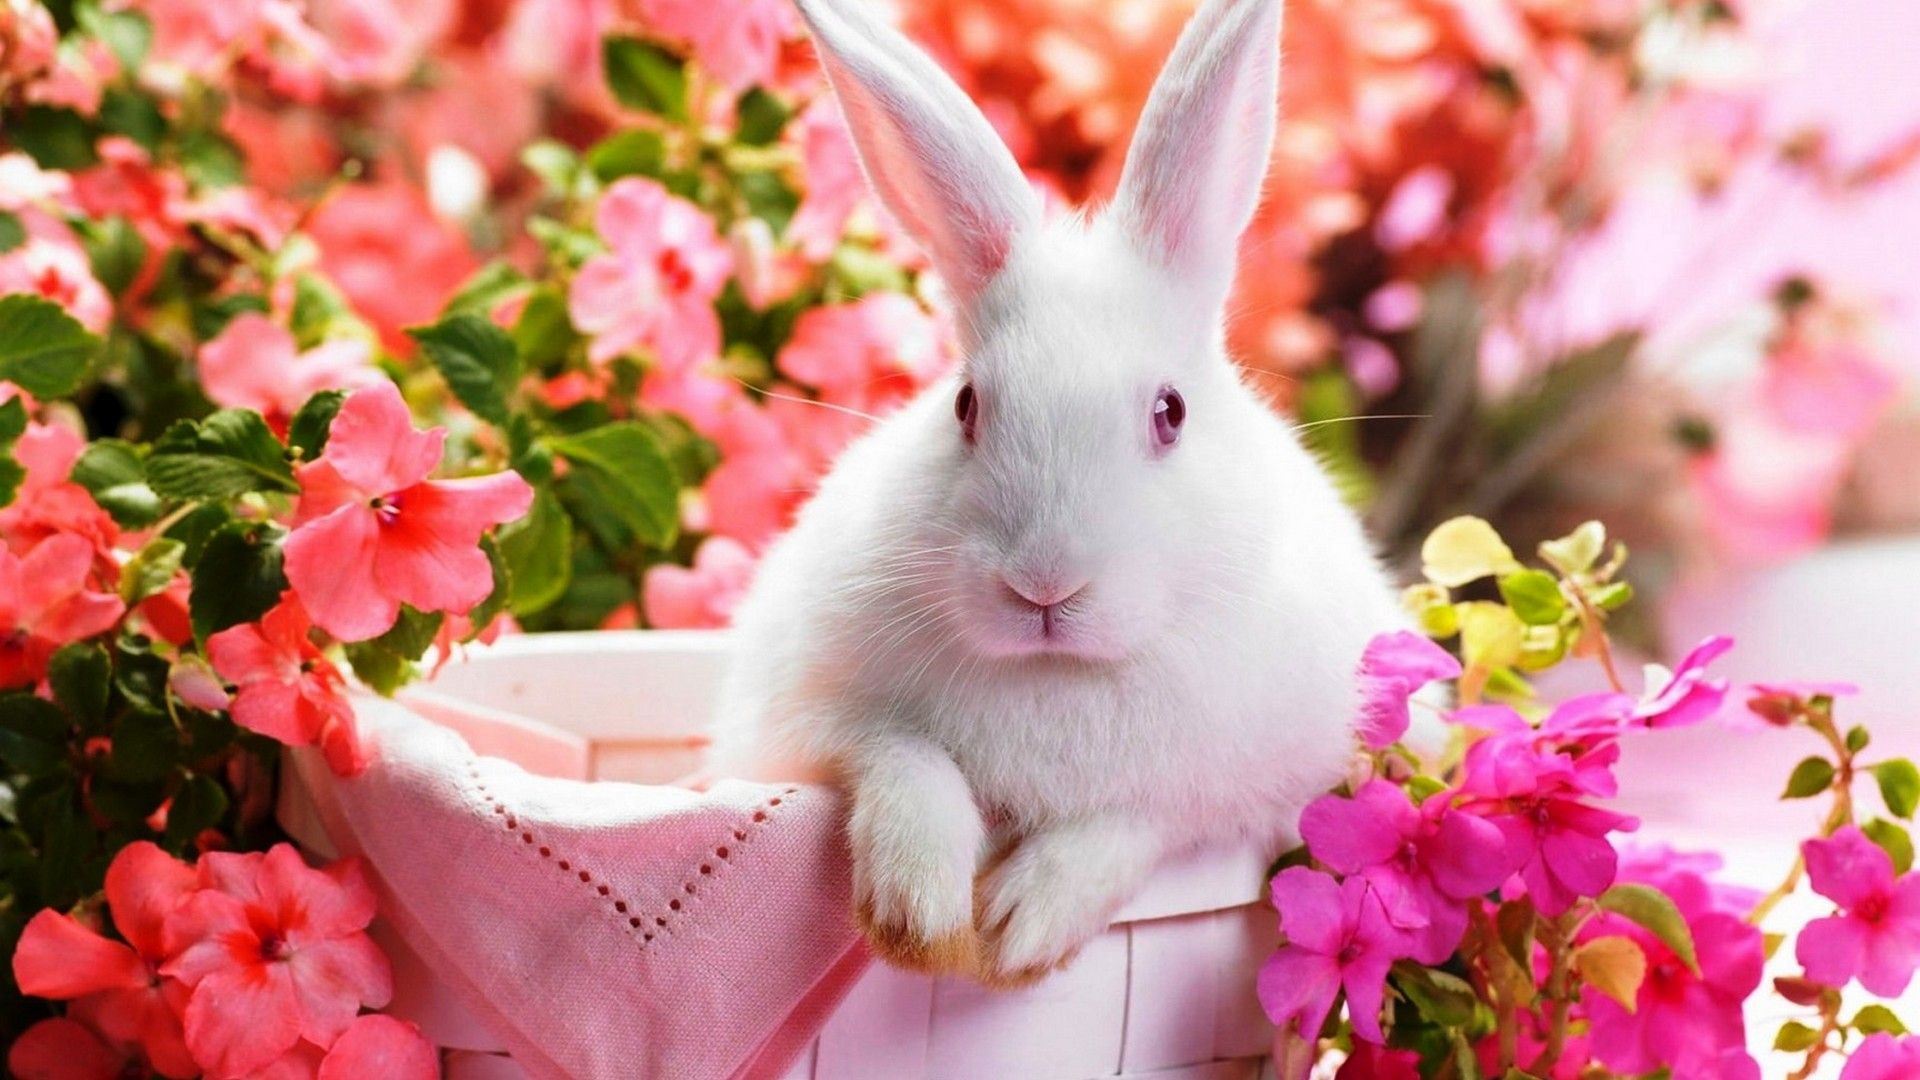 Cute Rabbit Wallpaper Hd